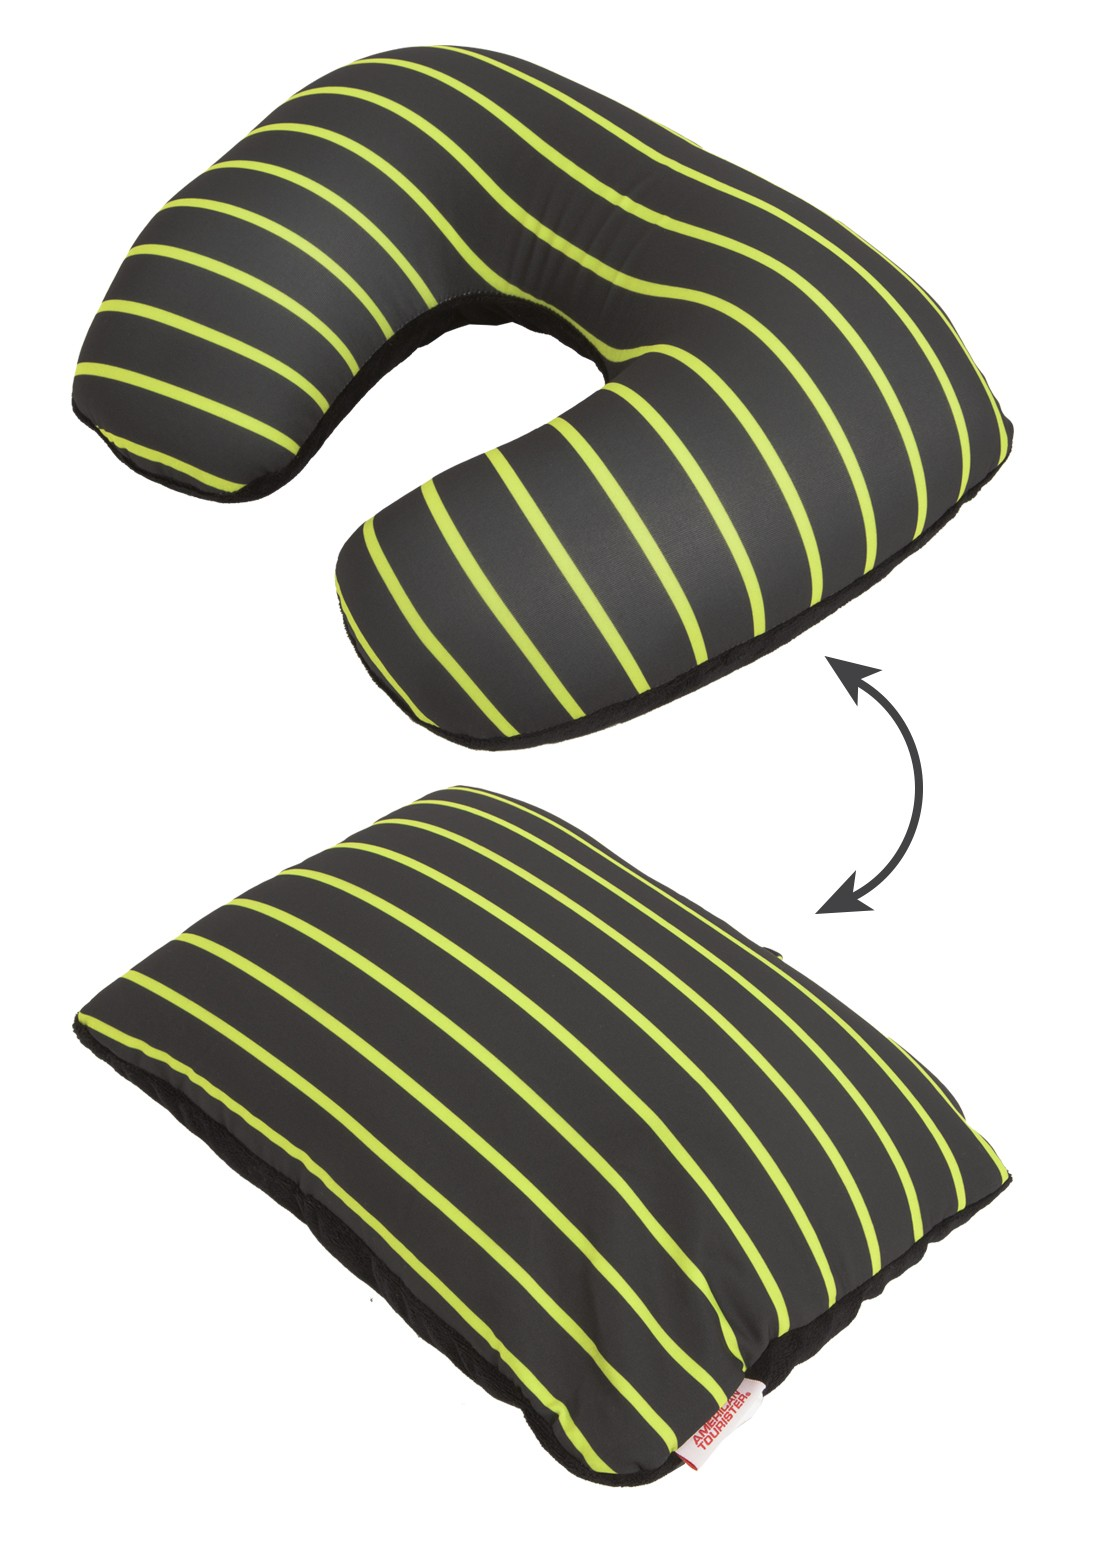 American-Tourister-Travel-Pillow